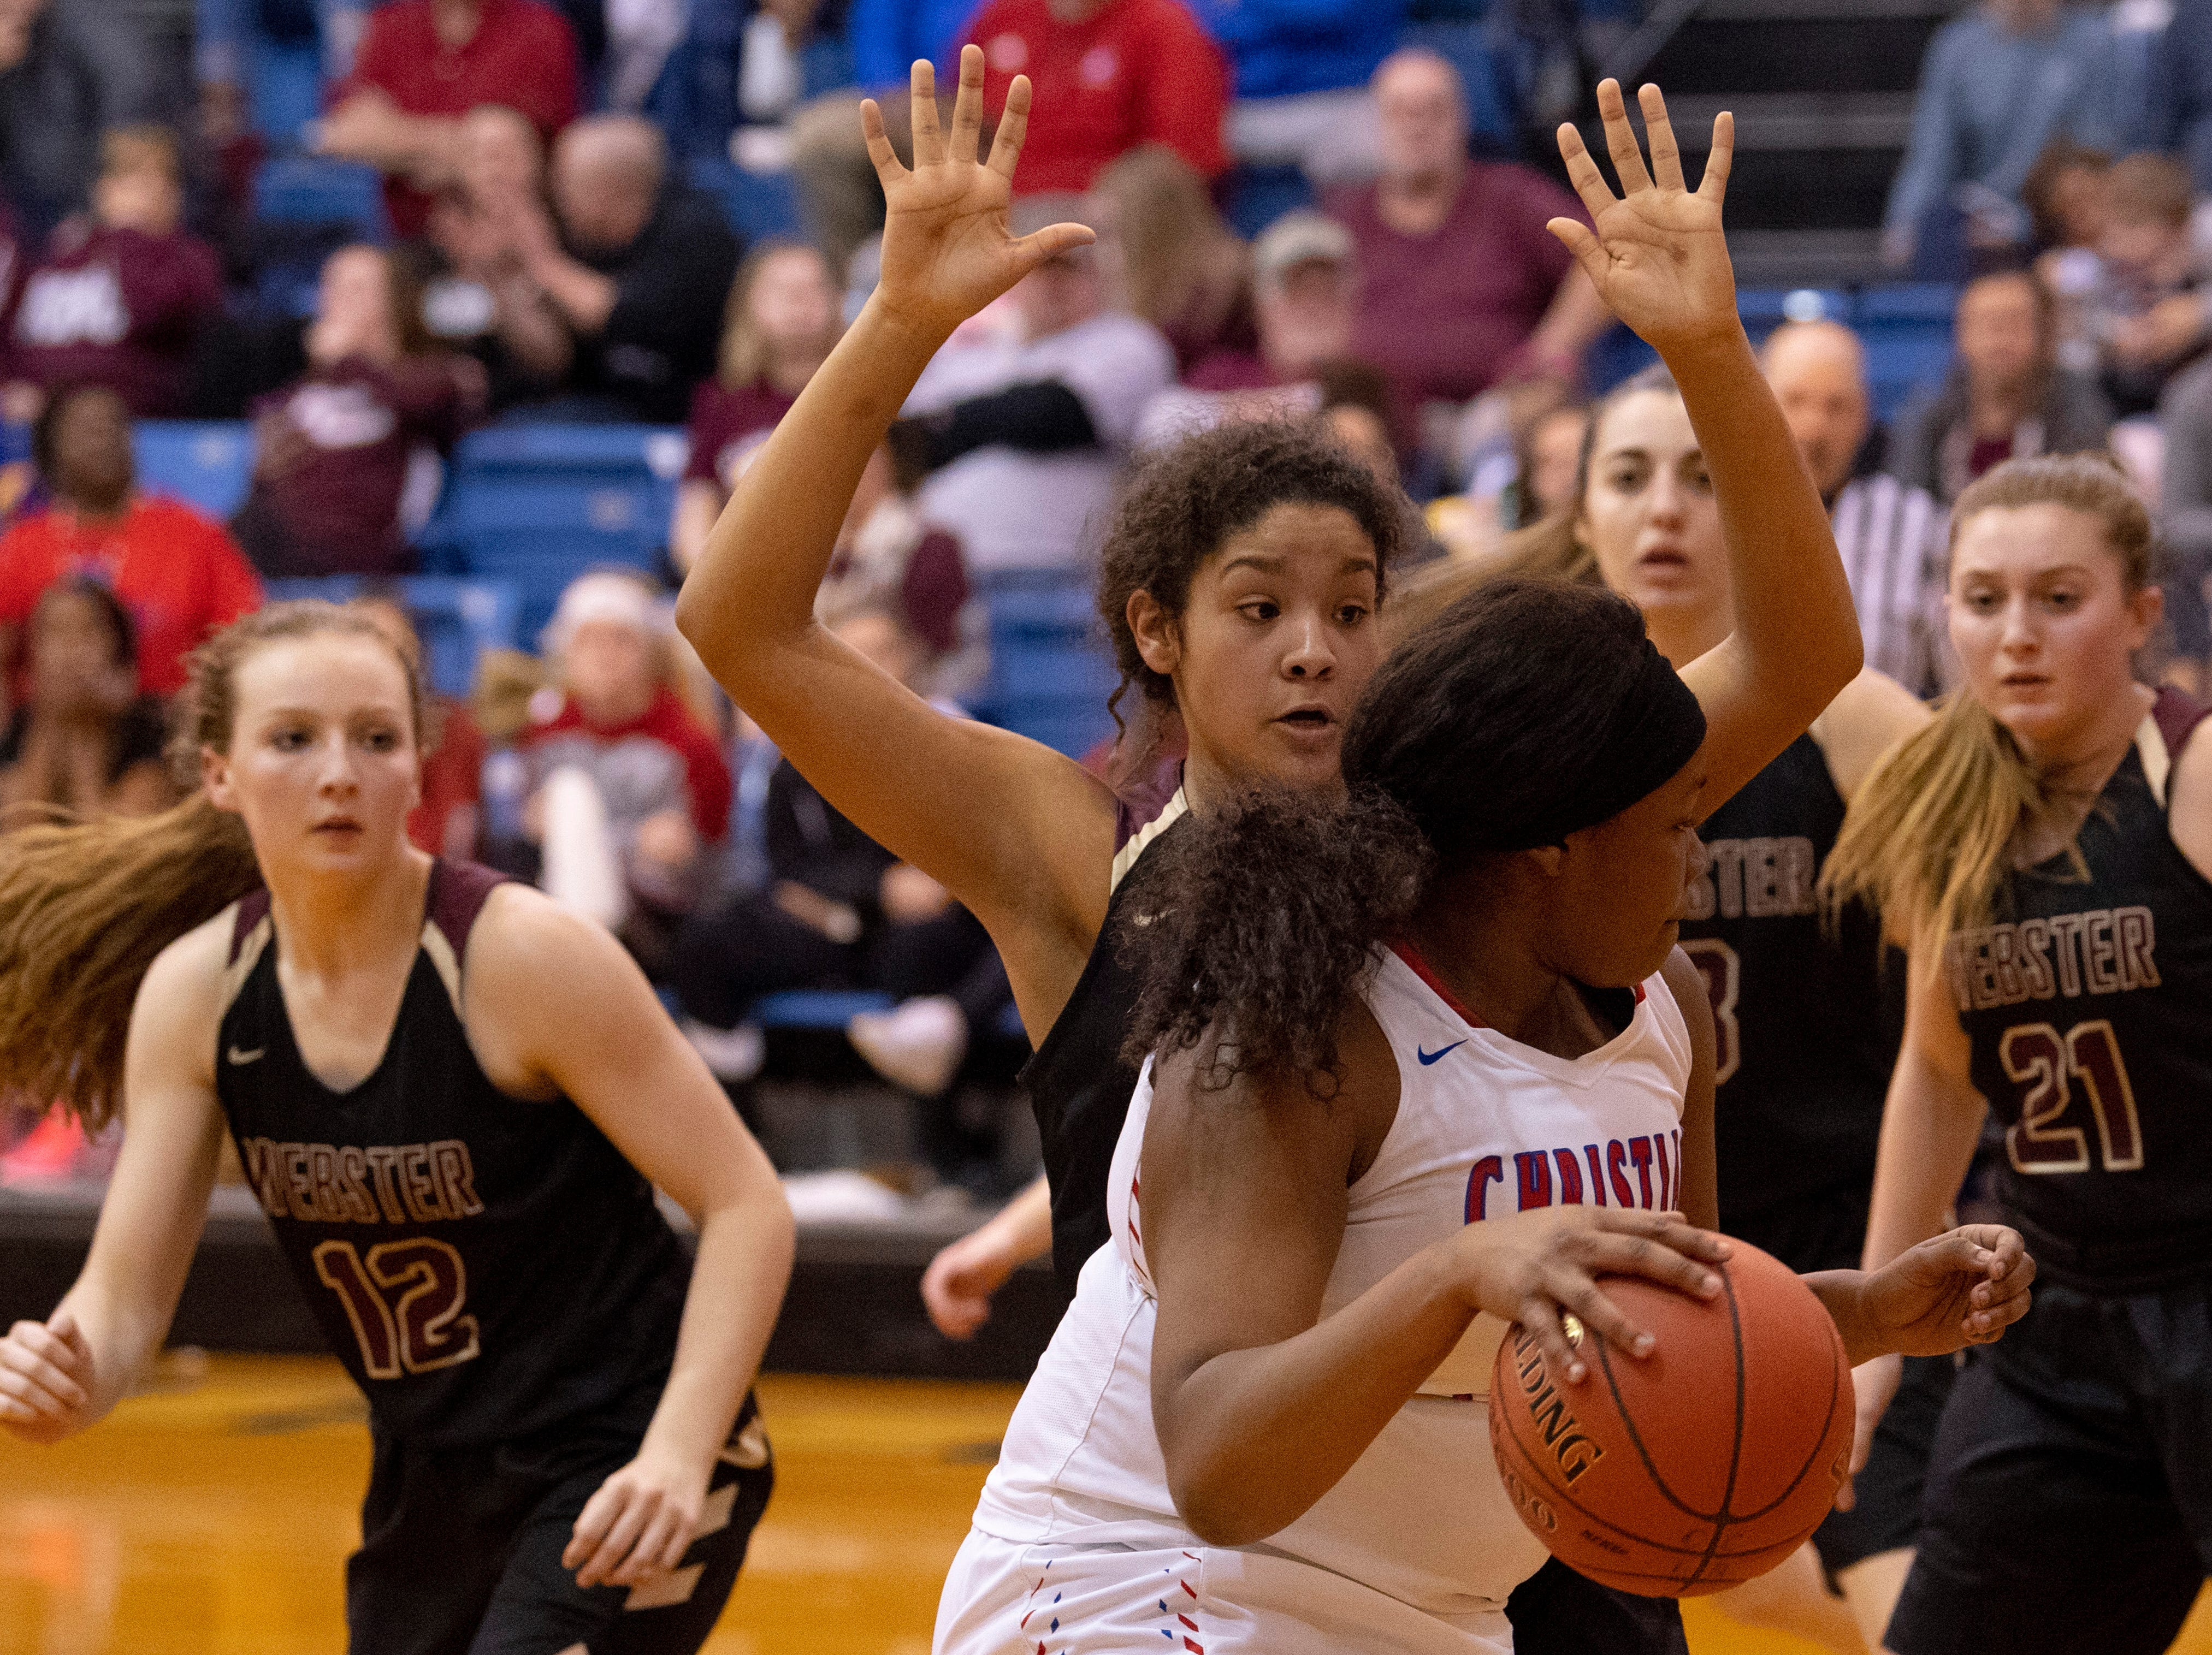 Christian's Trinity McGee (31) is guarded by Webster County's Raigan Price (31) during the Girls Region Tournament semifinals at the Rocket Arena in Marion, Ky., Monday night.